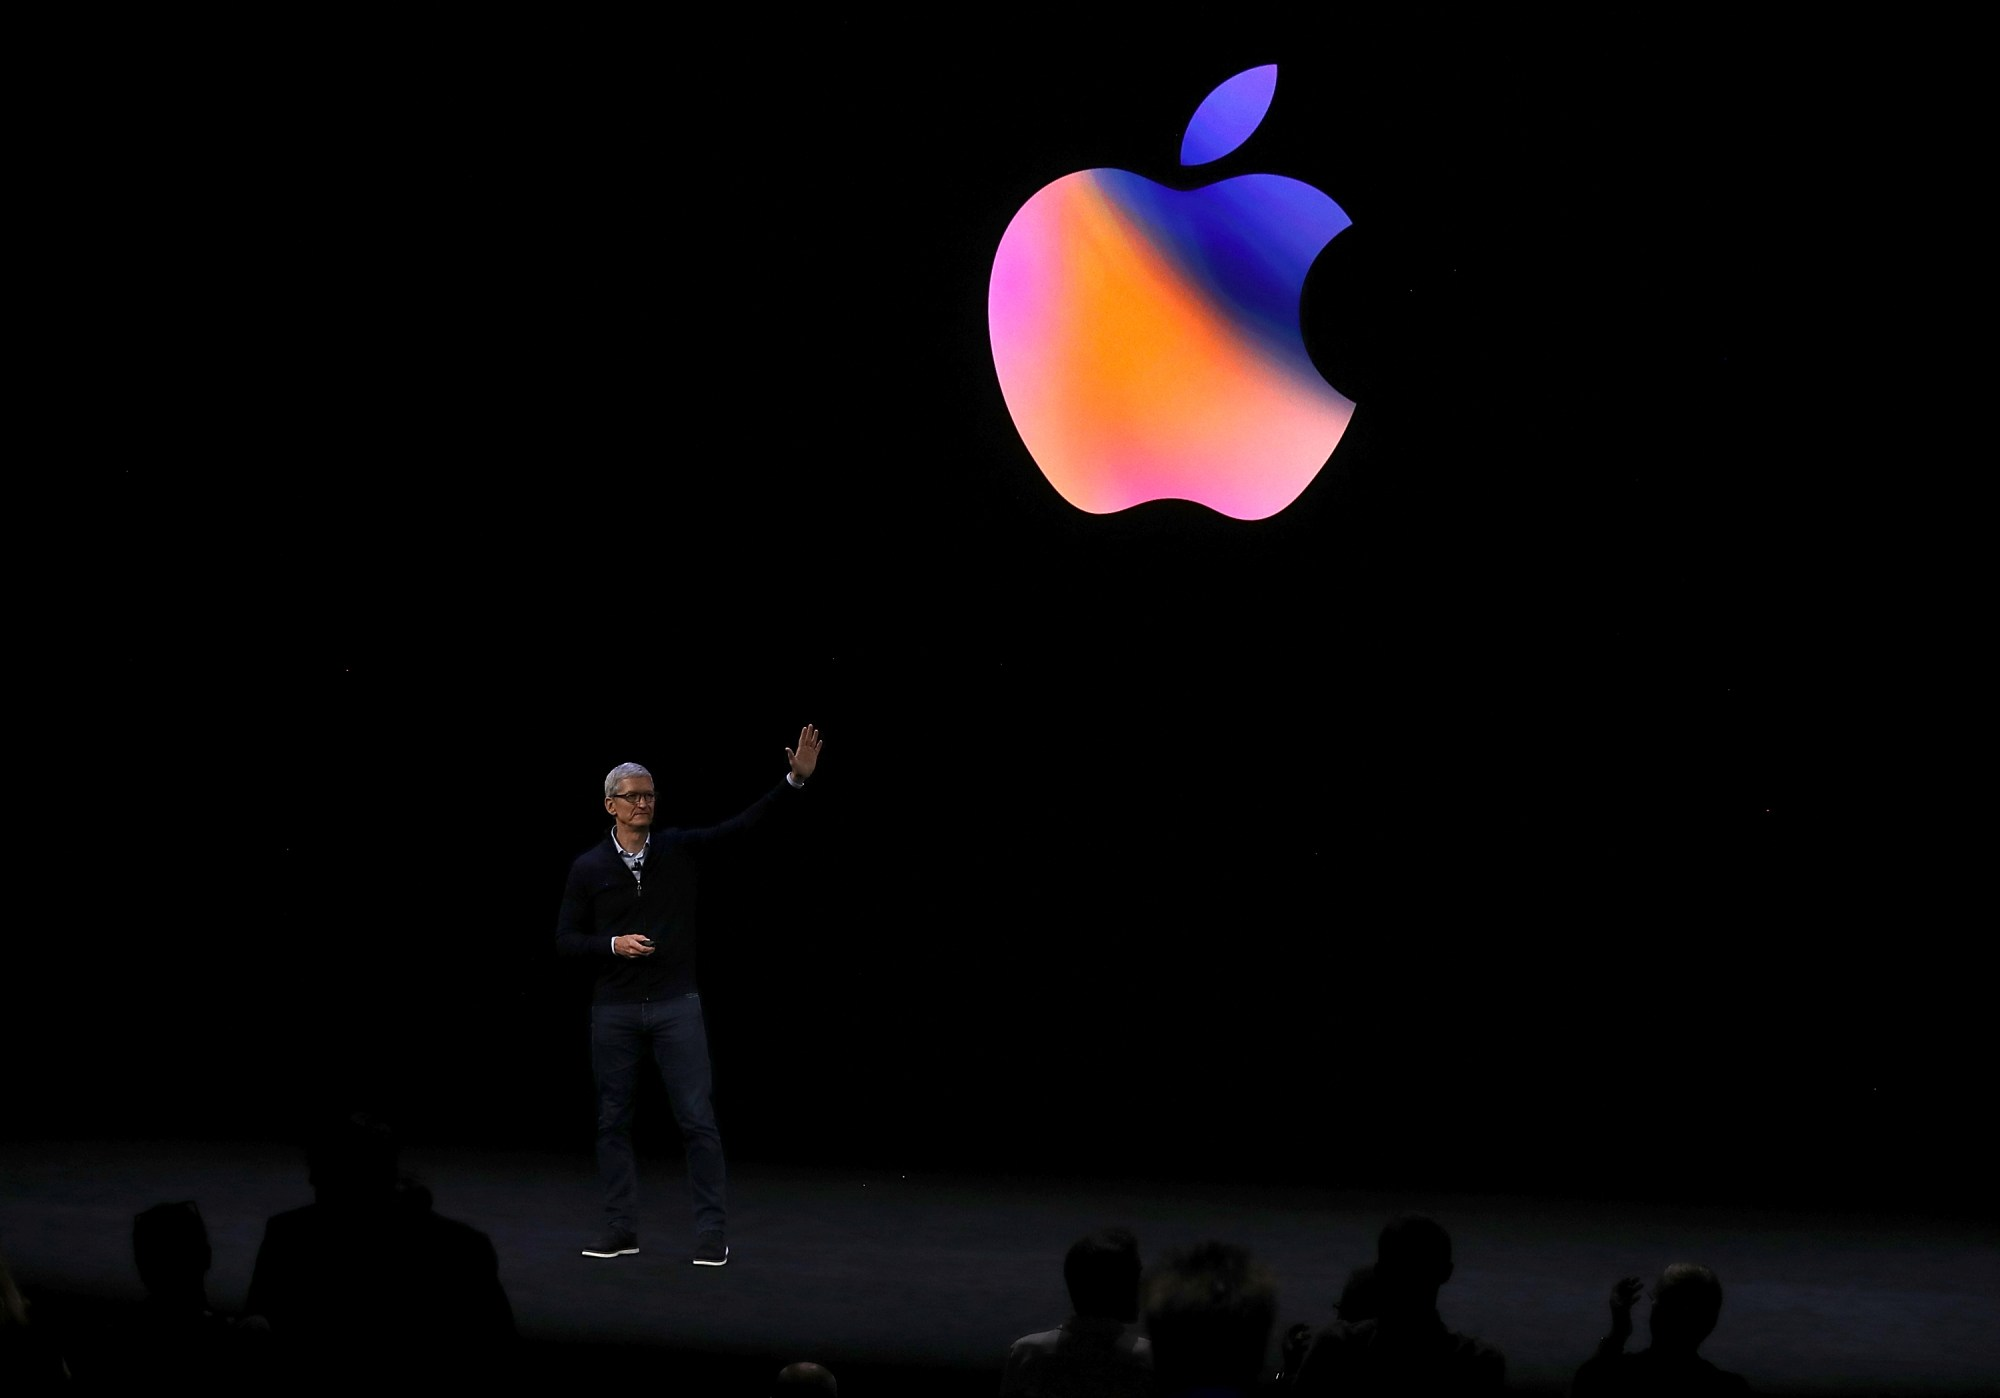 Apple CEO Tim Cook waves to the audience during an Apple event at the Steve Jobs Theatre on the Apple Park campus on Sept. 12, 2017 in Cupertino. (Credit: Justin Sullivan/Getty Images)